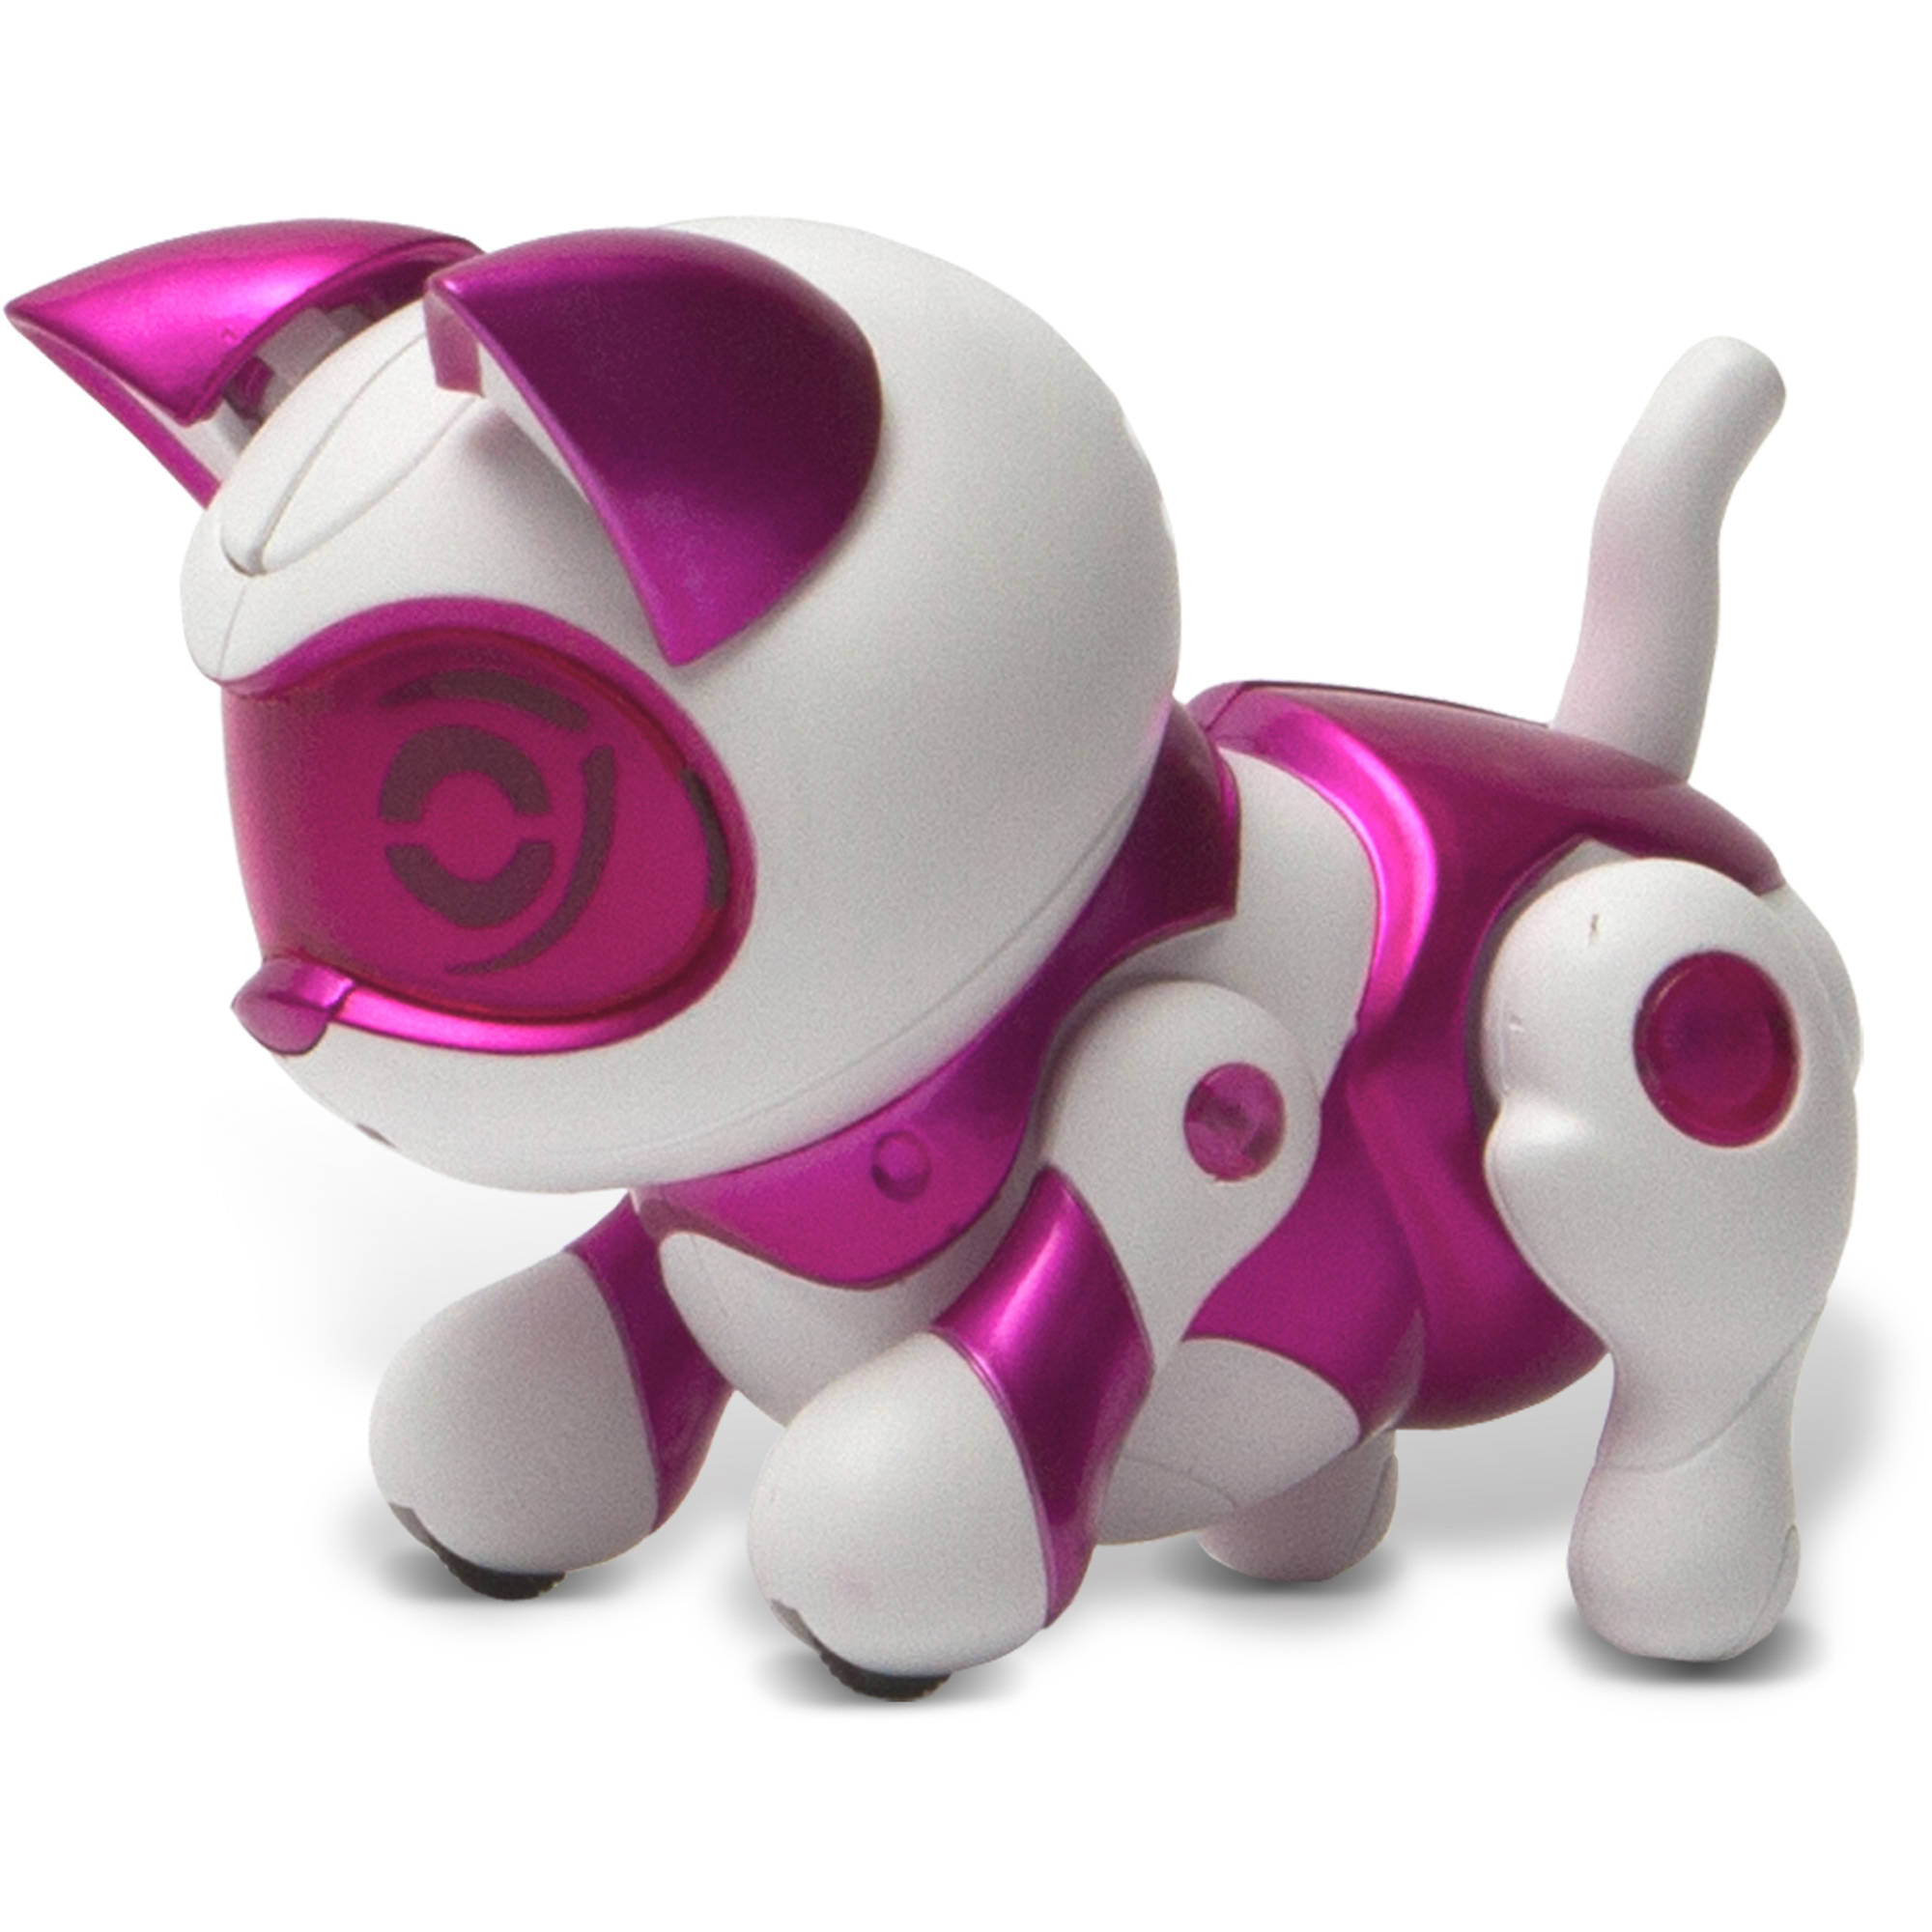 Tekno Robotic Pets, Newborn Kitty, Pink by Genesis